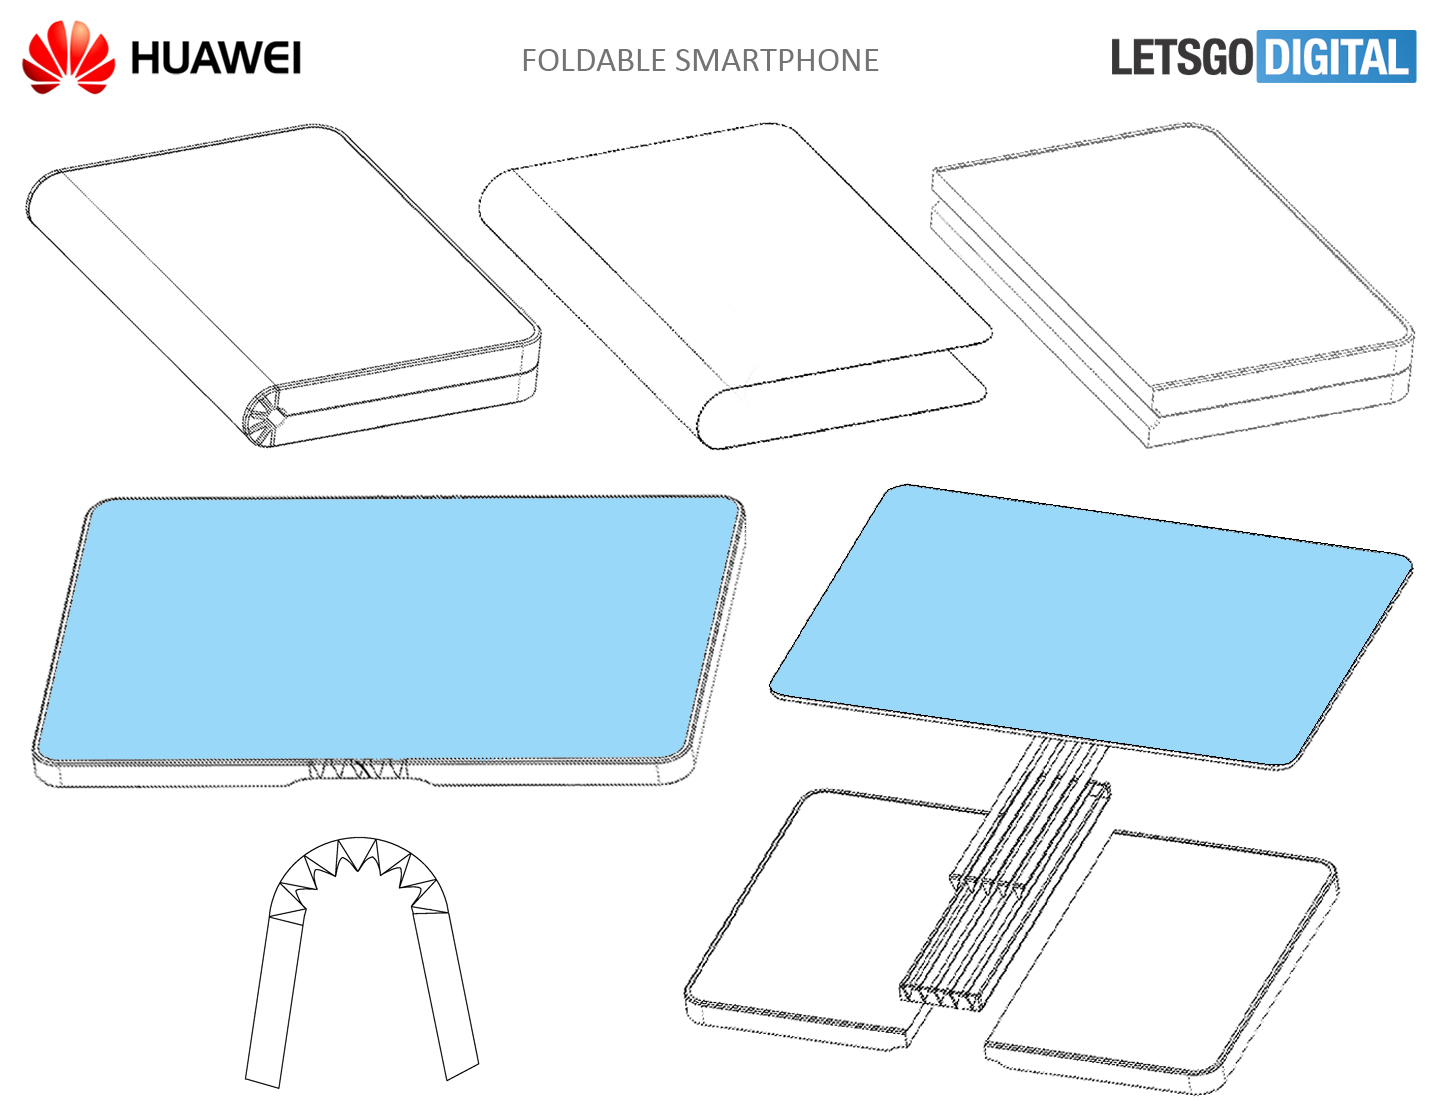 Huawei Patents A Foldable Smartphone